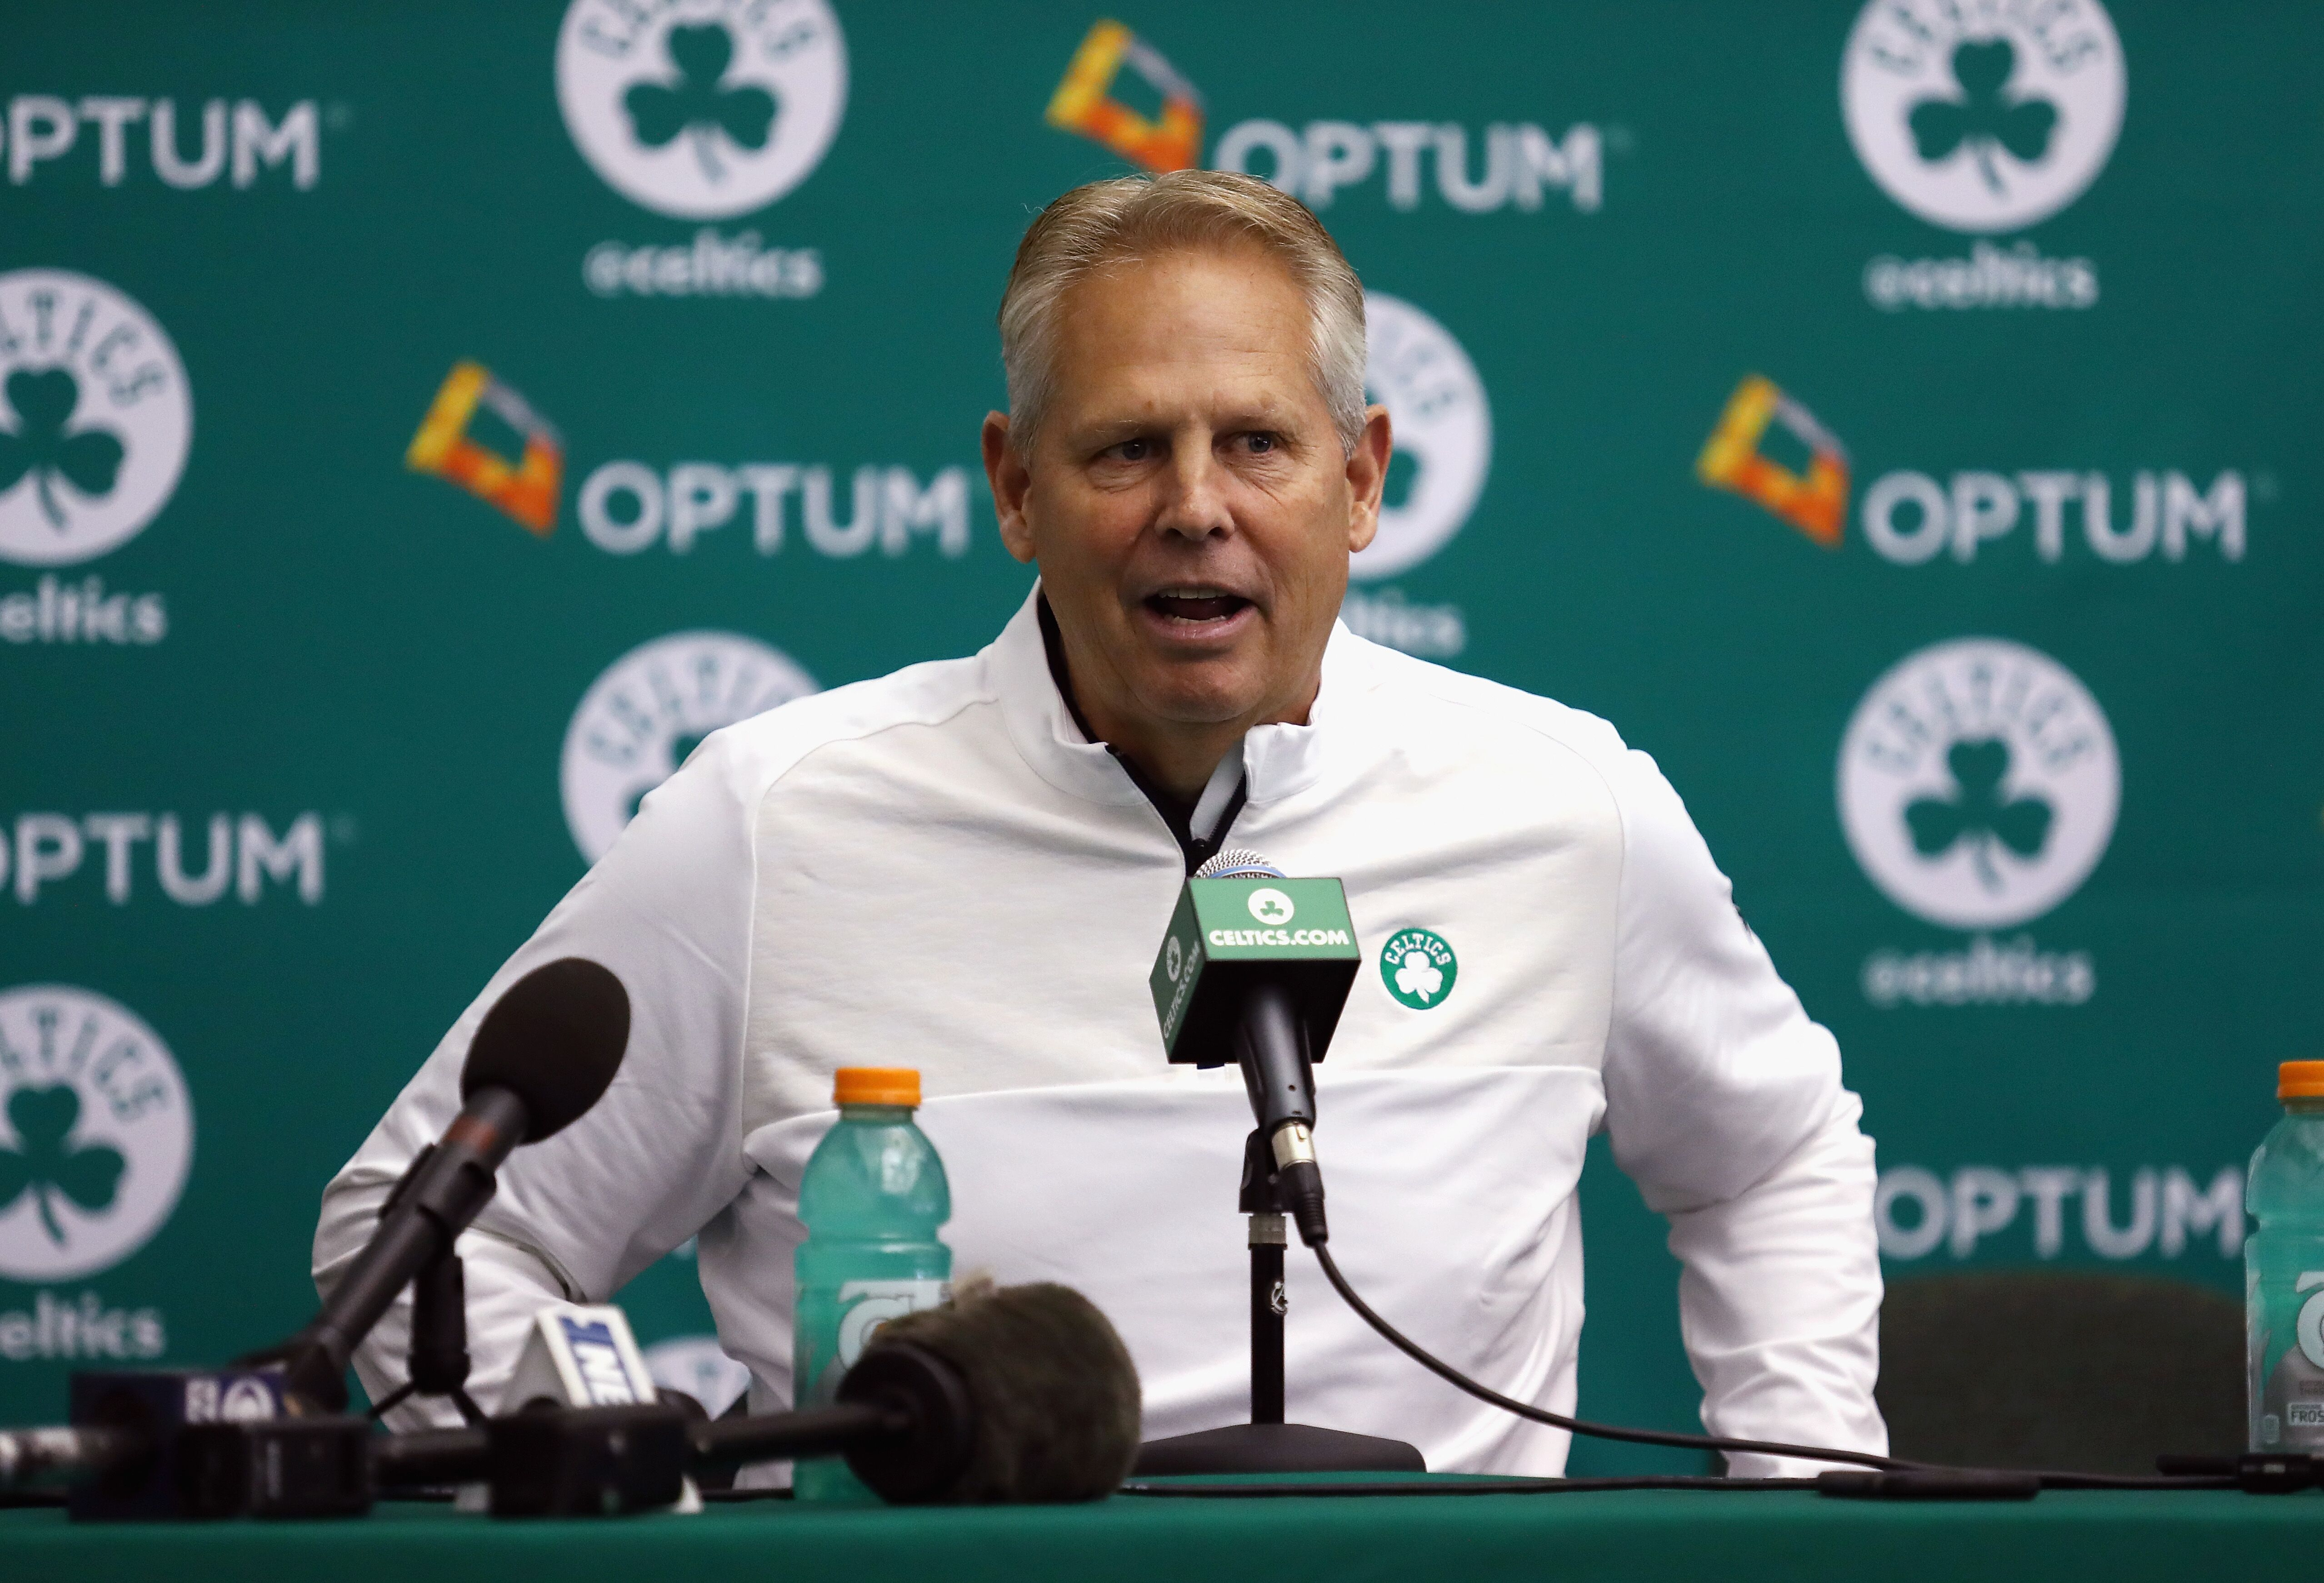 Boston Celtics: No team had a bigger fall from grace in past year than the C's